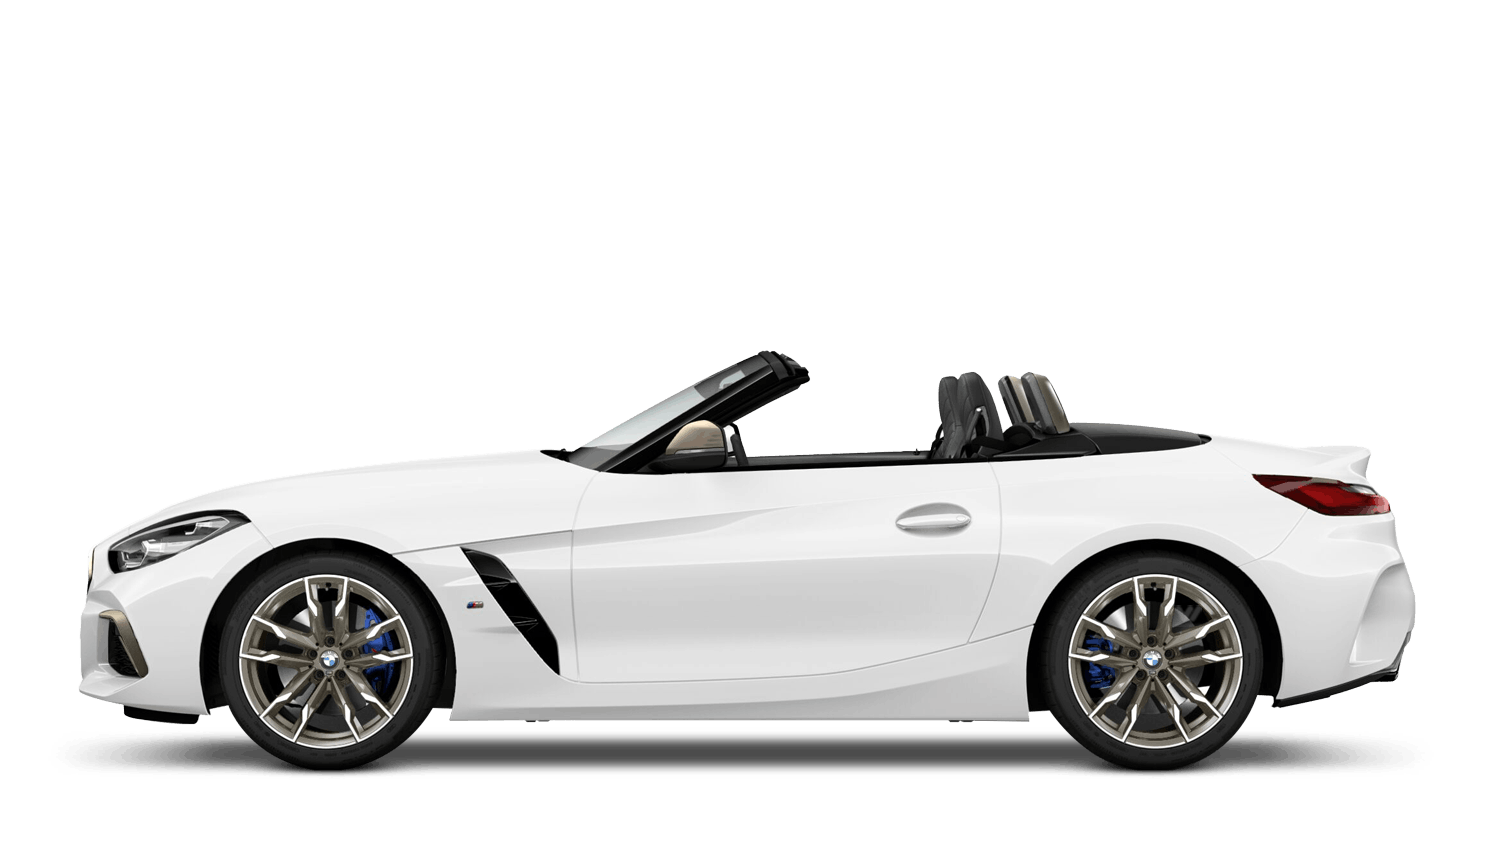 Alpine White (Solid) BMW Z4